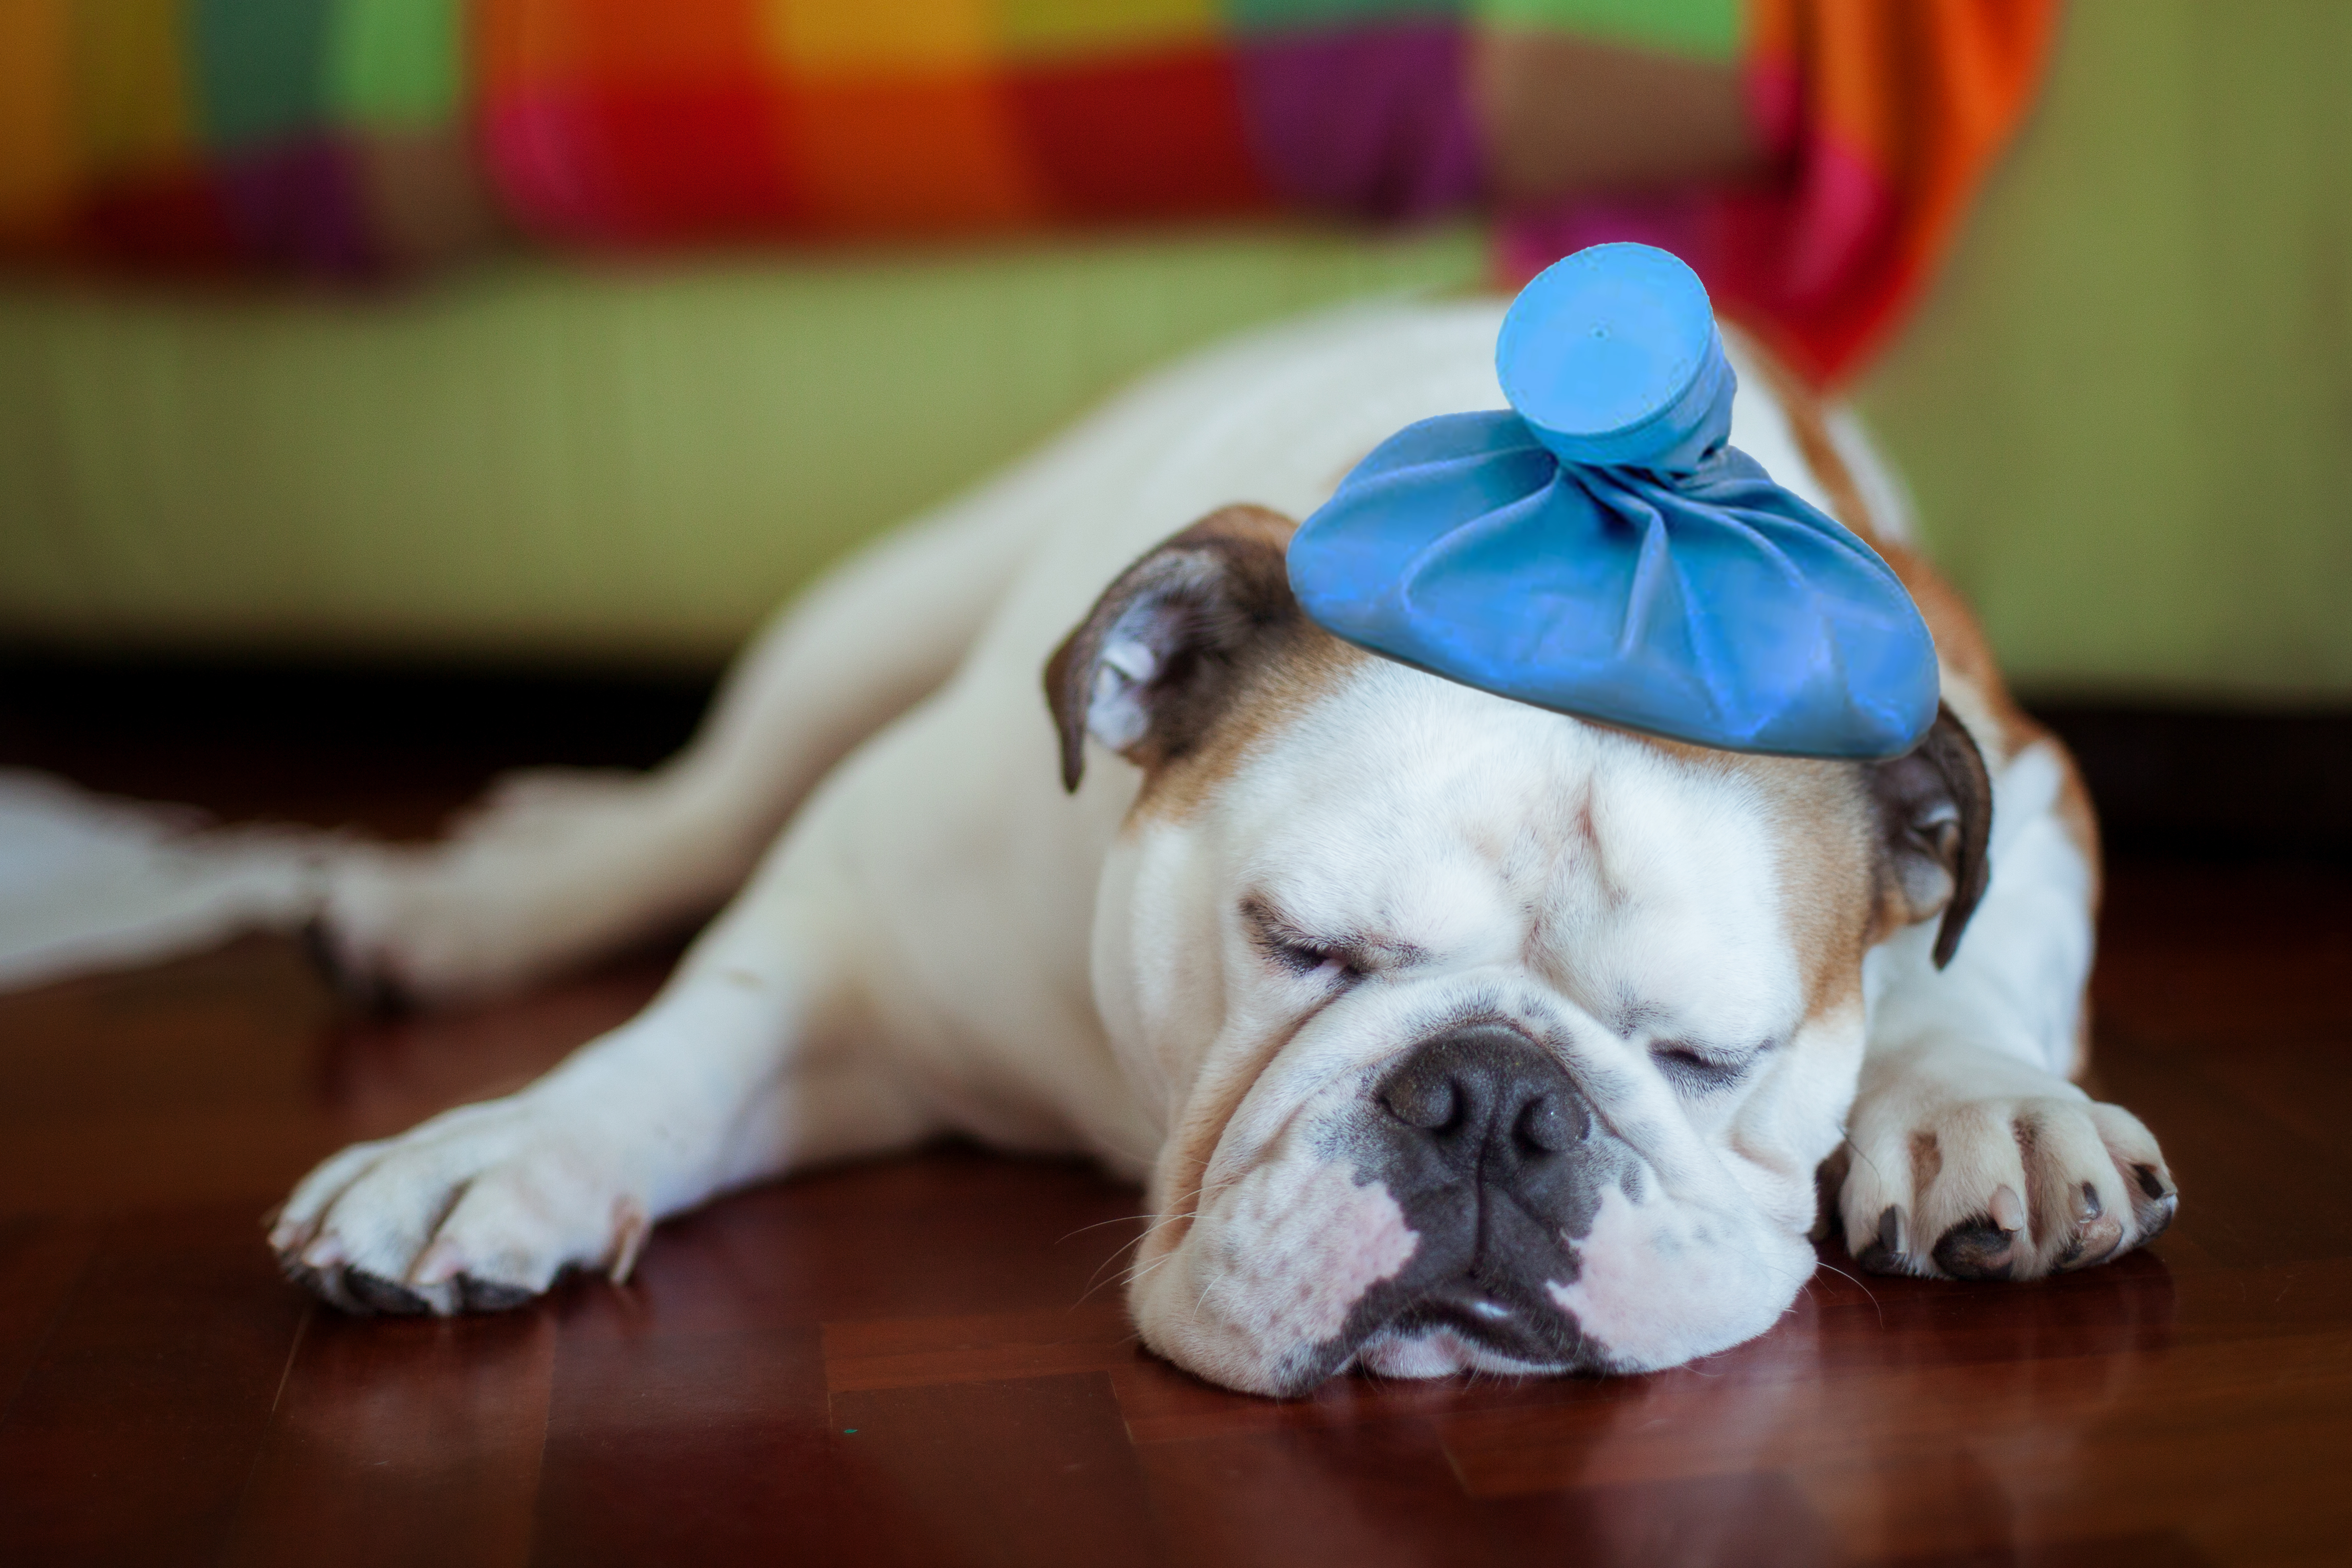 Photo of Sick Young Puppy With Ice Bag on Head